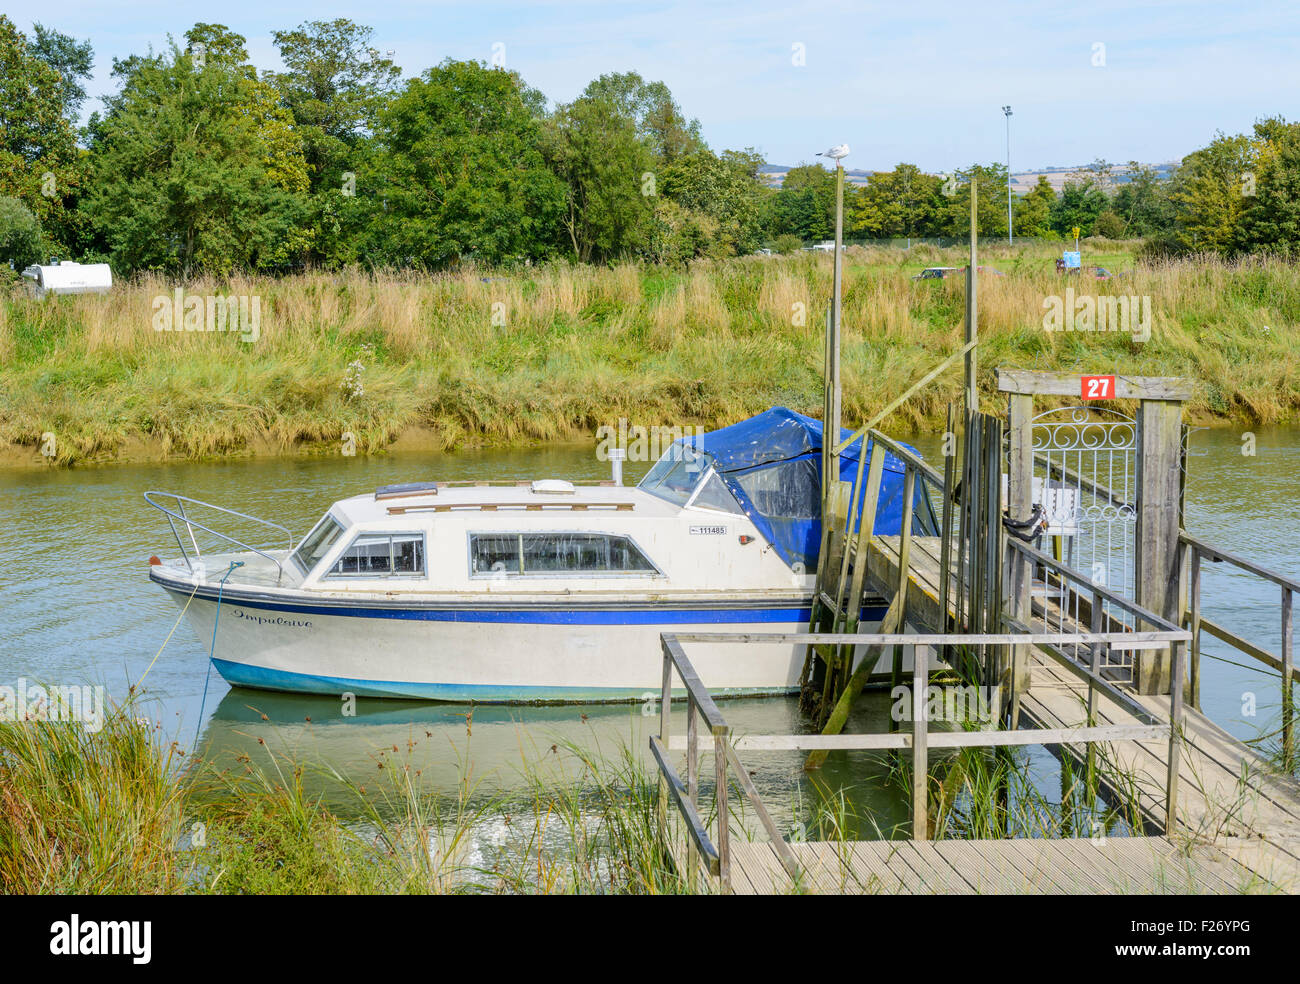 Small pleasure boat moored up on the River Arun in Arundel, West Sussex, England, UK. - Stock Image